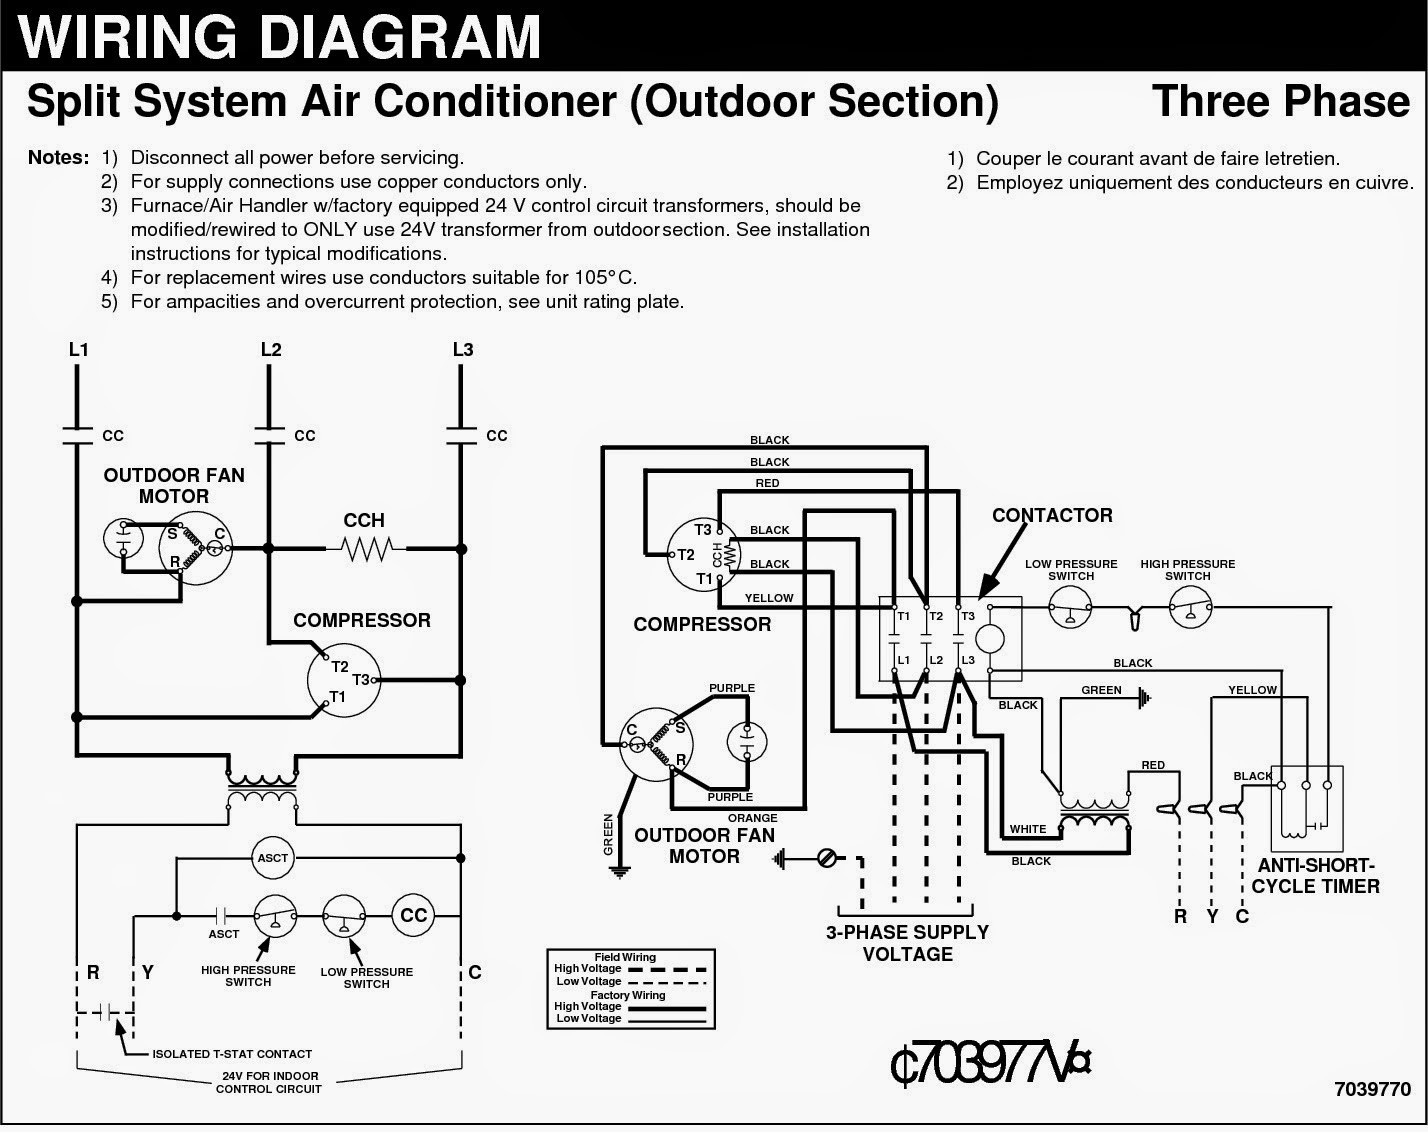 Single Line Wiring Diagram Timer